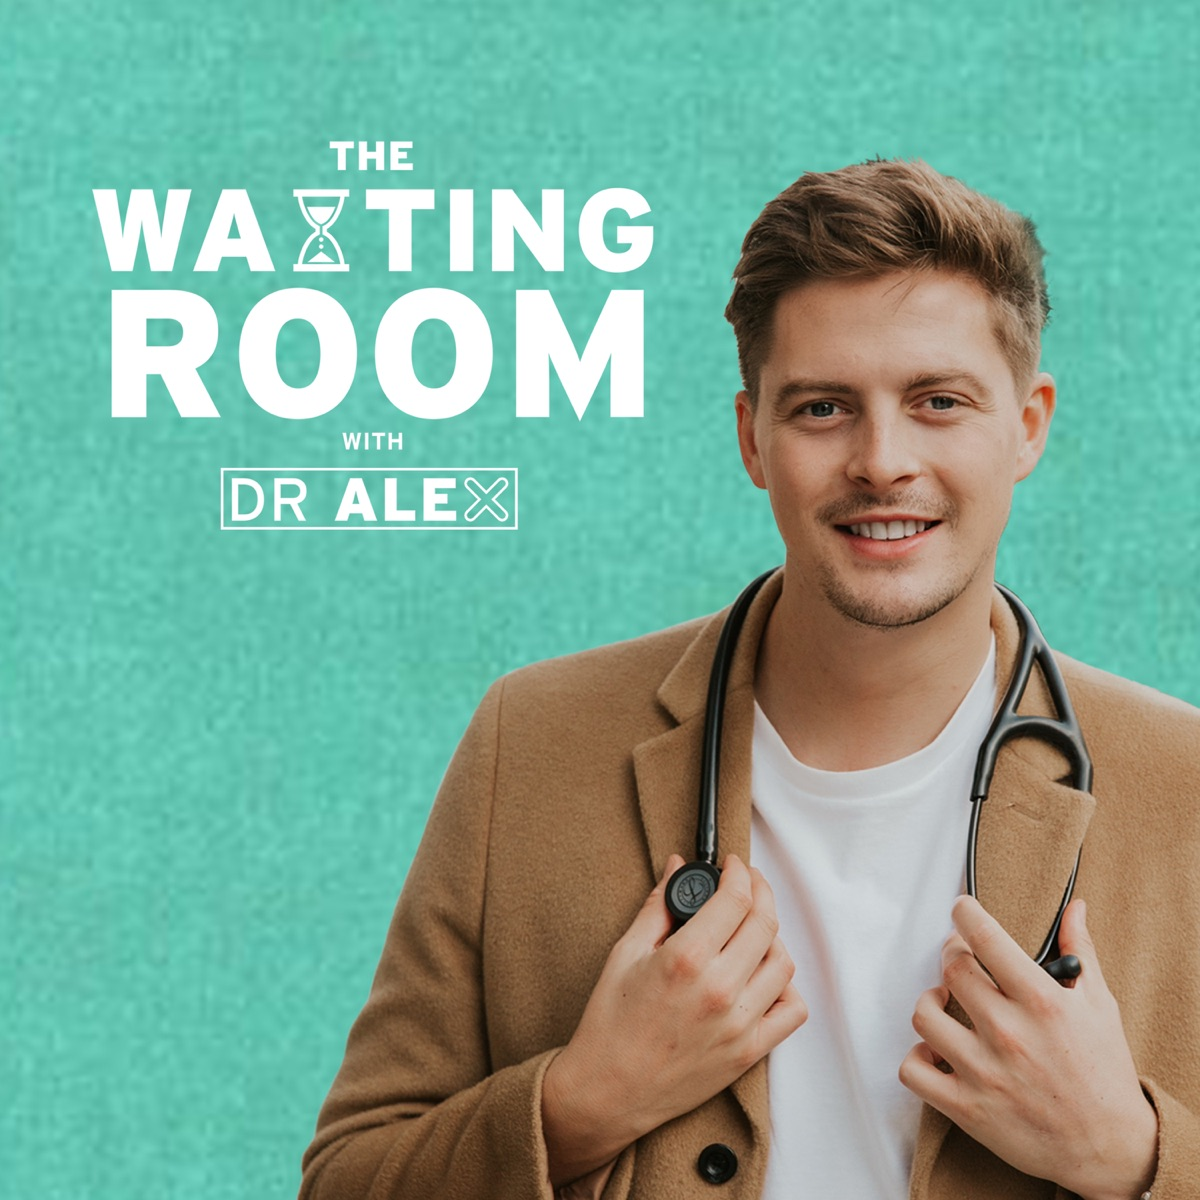 The Waiting Room With Dr Alex